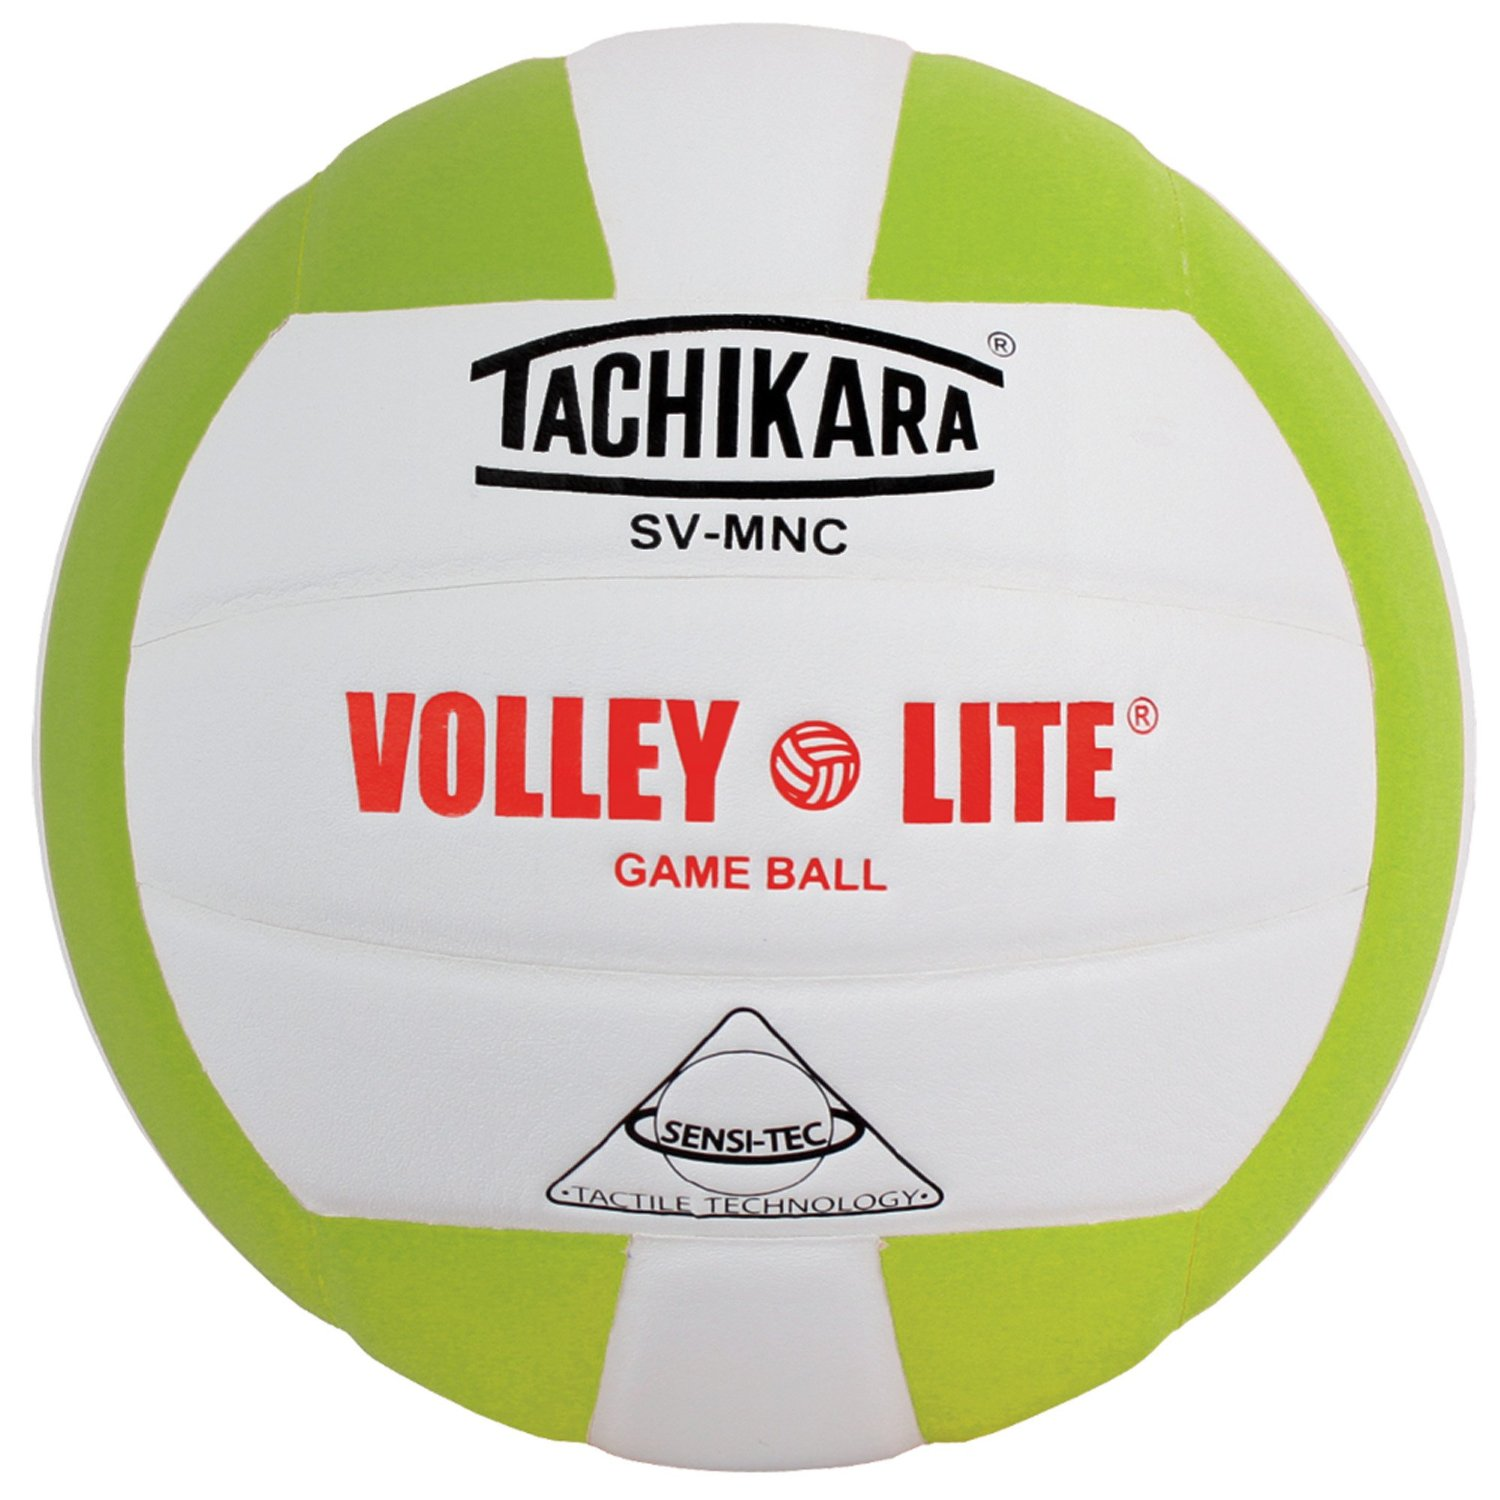 Tachikara SV-MN Volley-Lite Volleyball All Colors